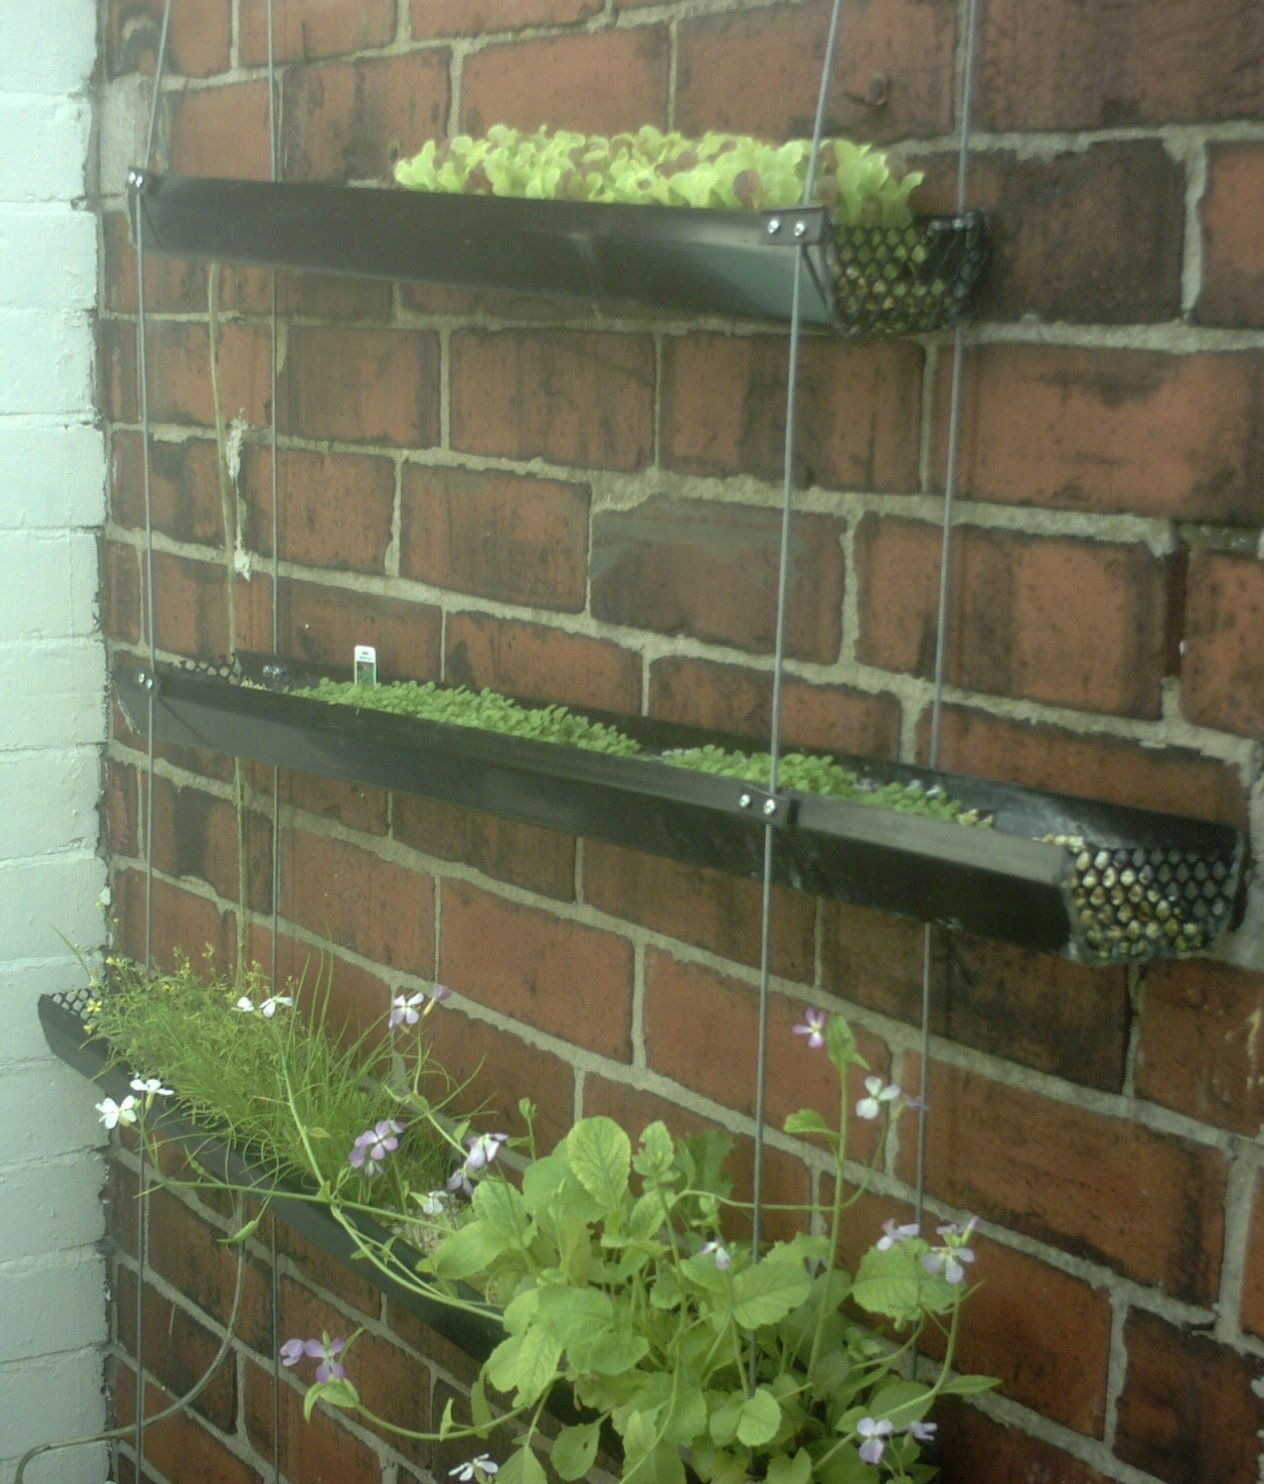 Vertical hydro veg patch